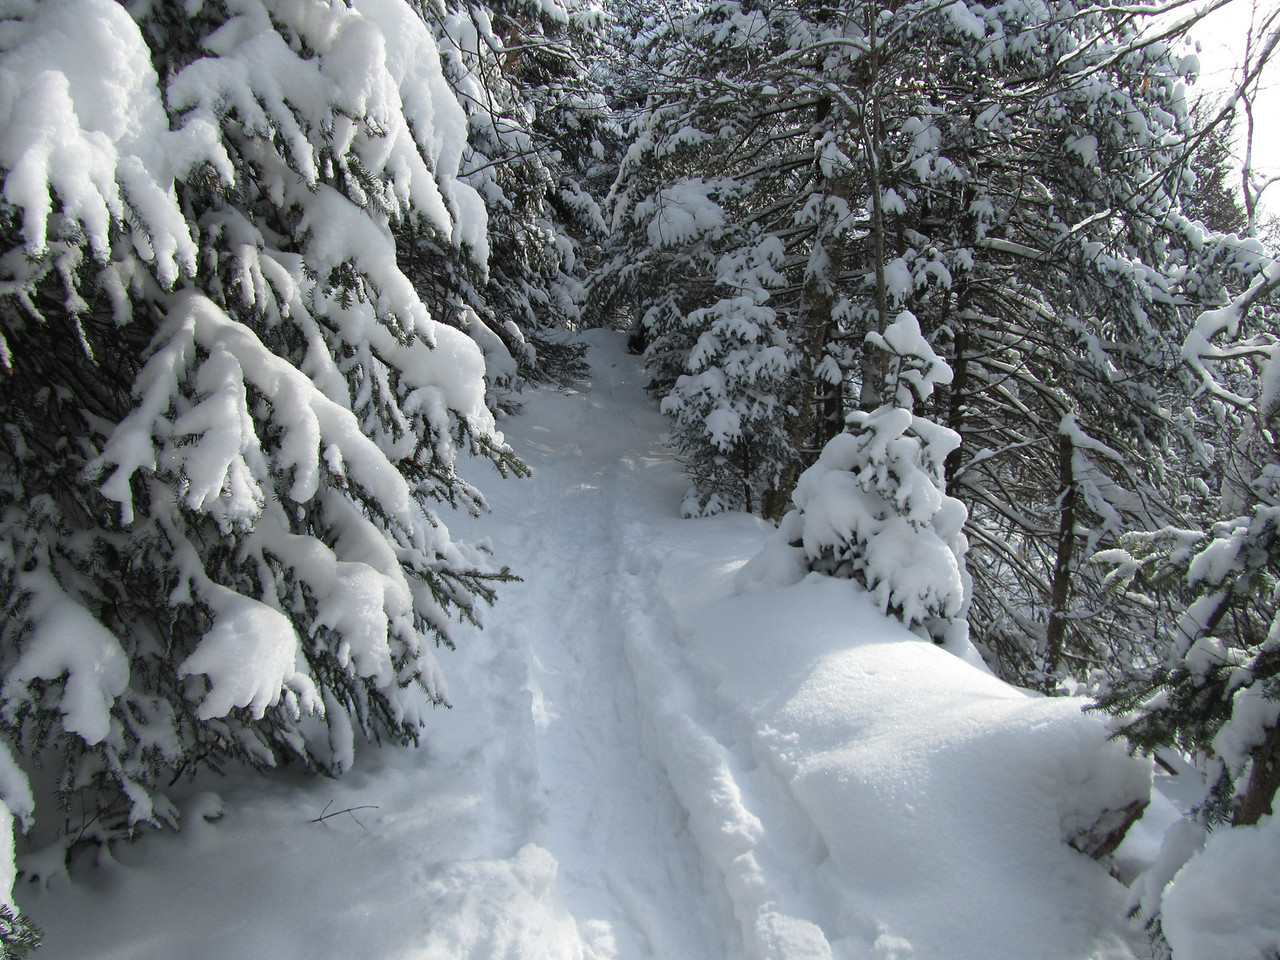 Nearing the top, the trail narrowed through pines and created a dramatic view, like we are entering the Yeti's lair.